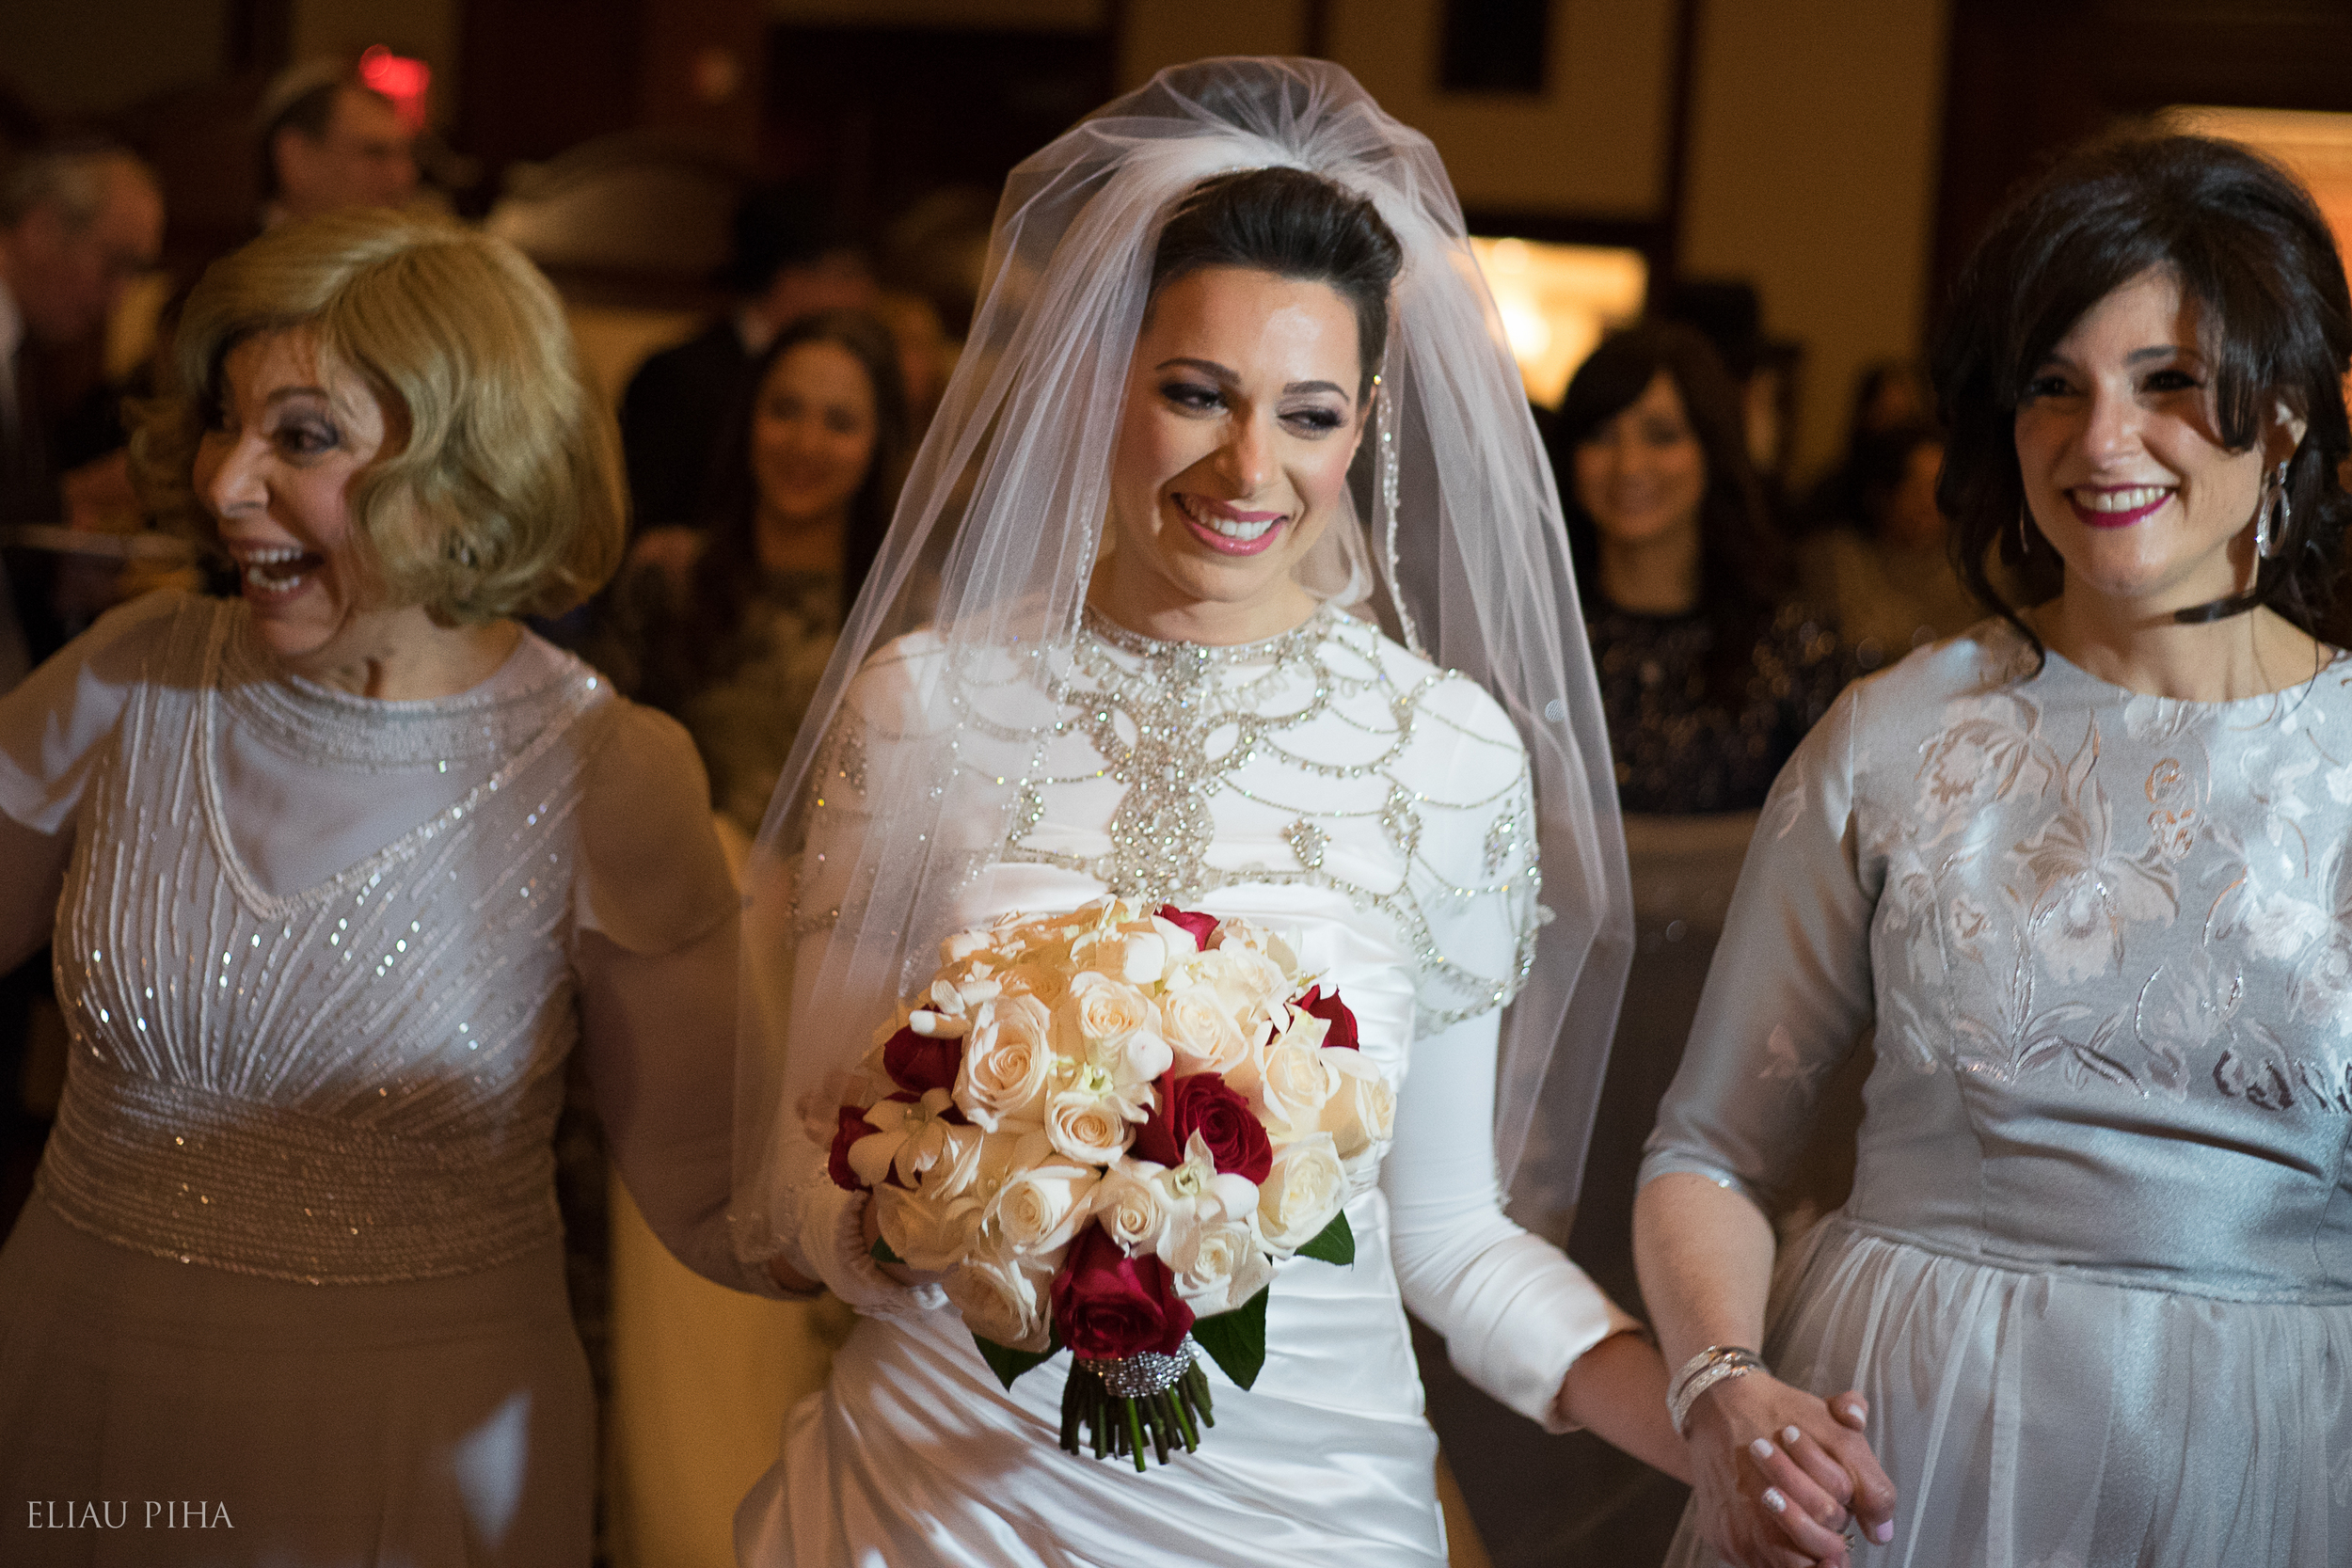 Wedding Sara and Ayal | Eliau Piha studio photography, new york, events, people-23.jpg